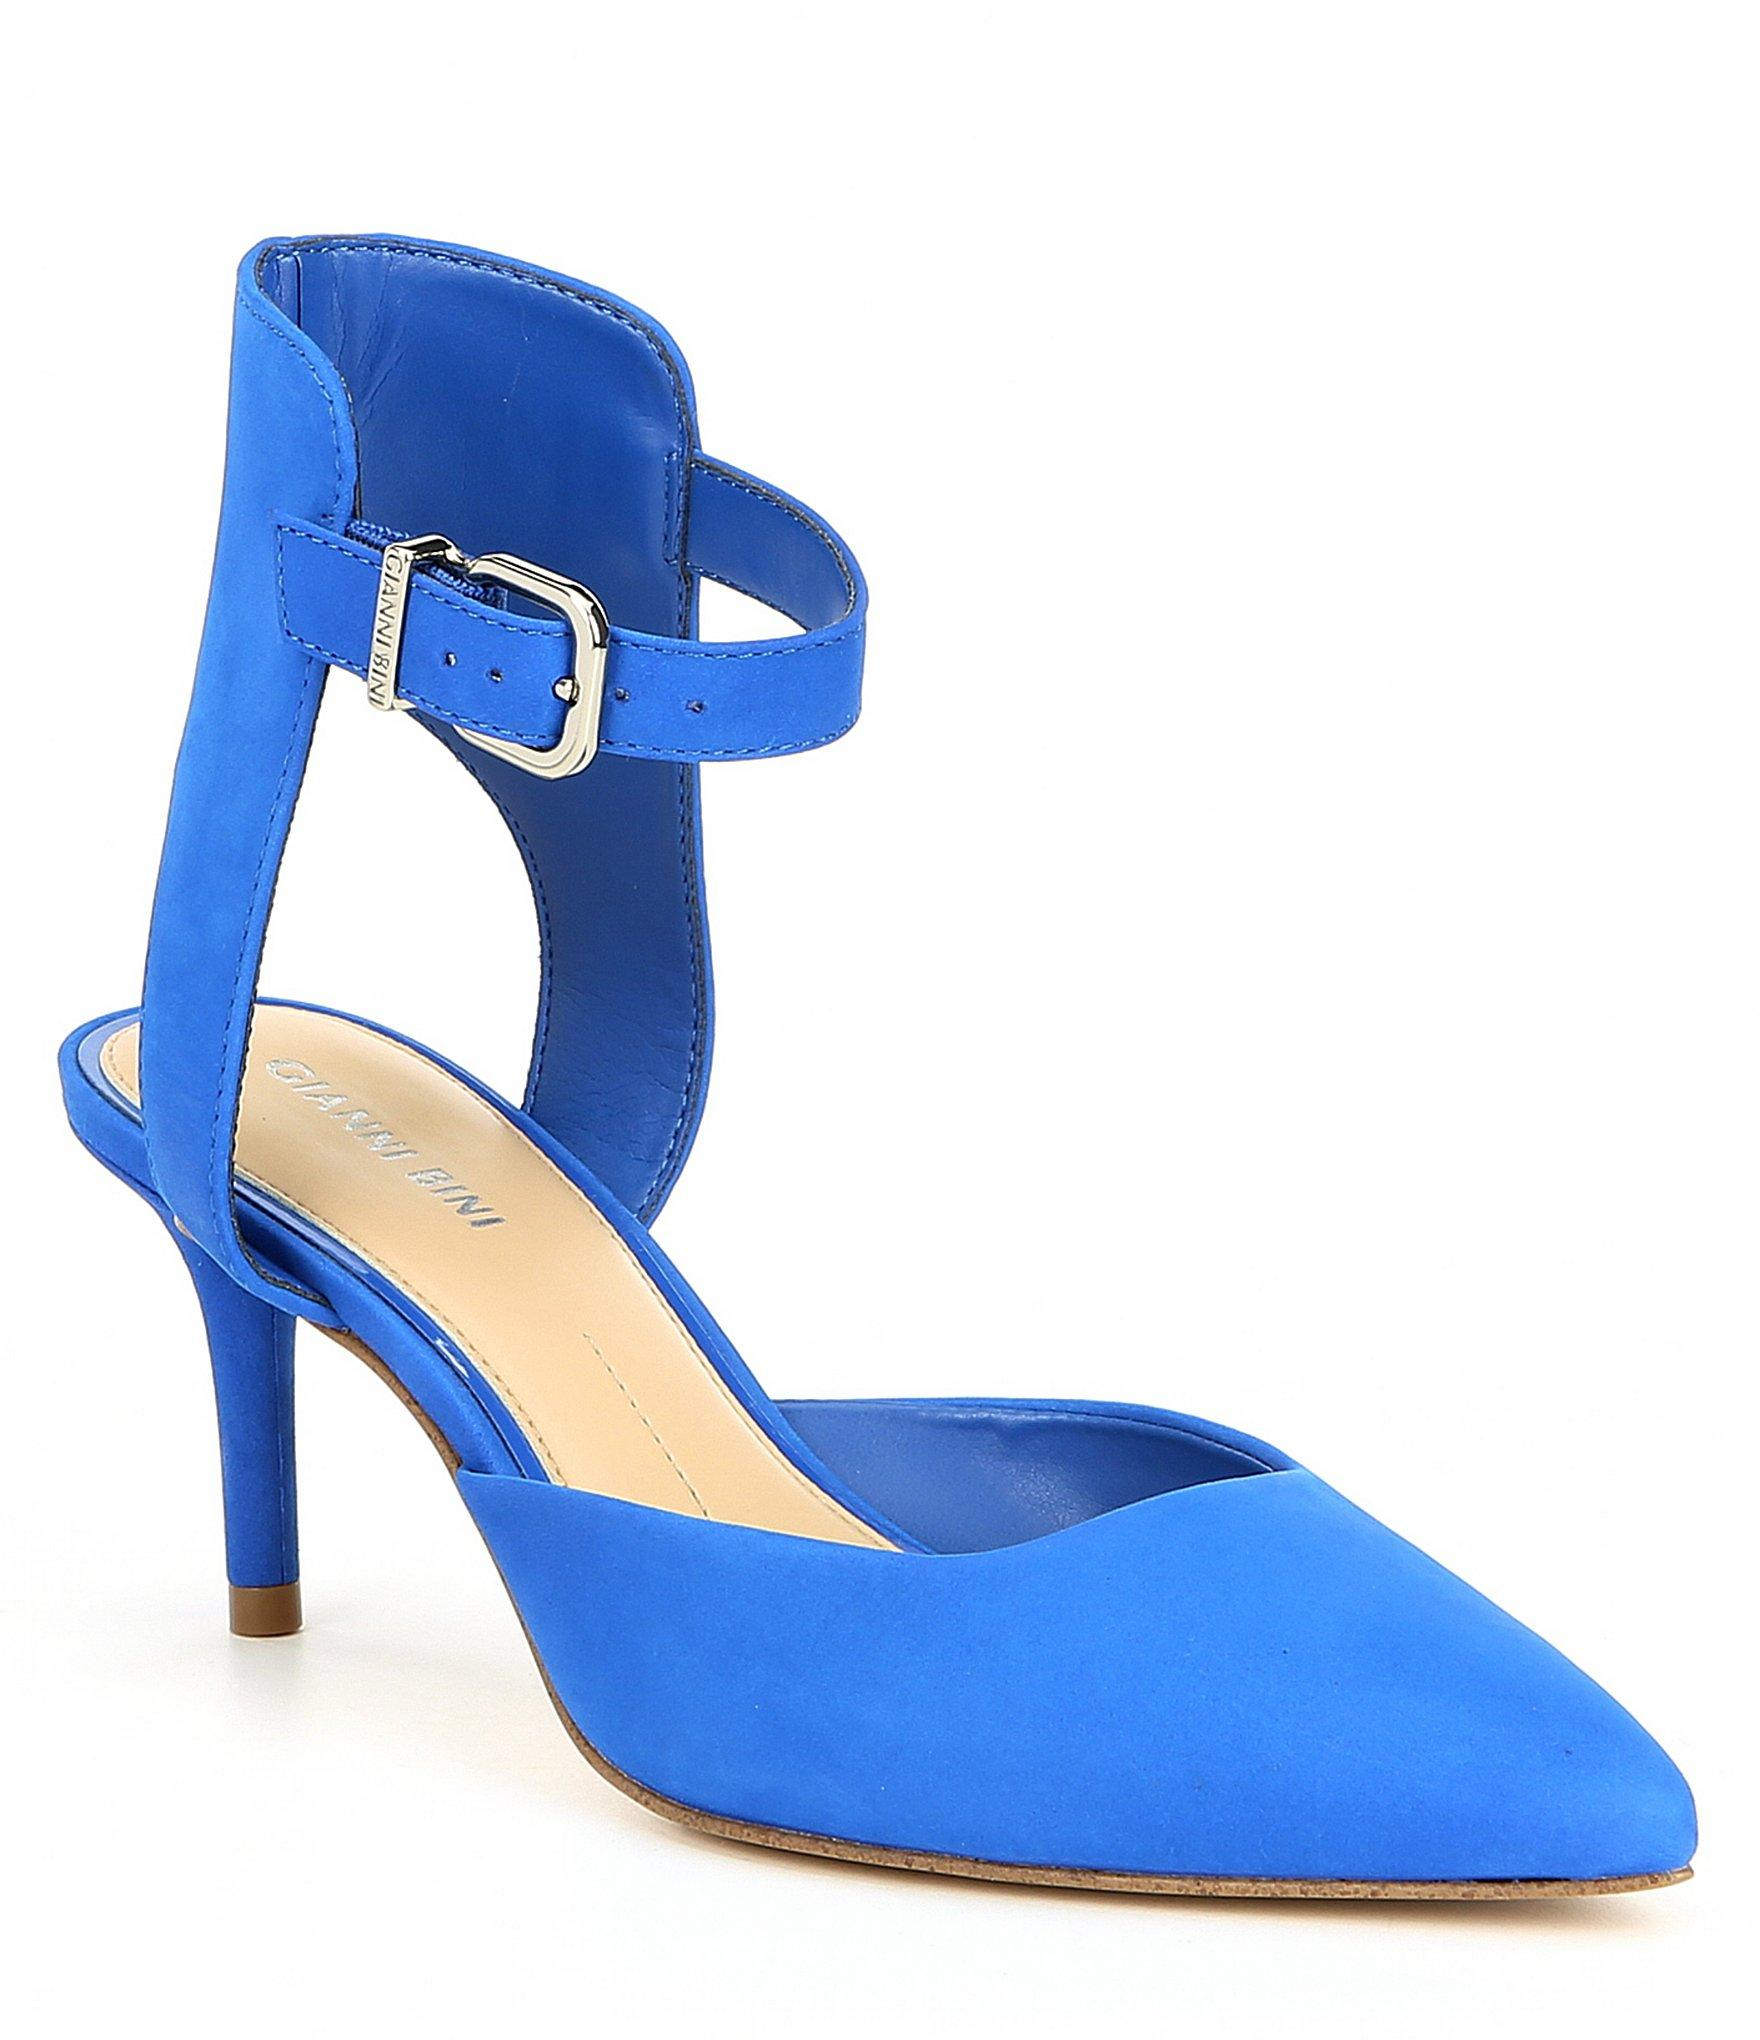 6944e43dbad Lyst - Gianni Bini Myrabelle Nubuck Leather Two-piece Pumps in Blue